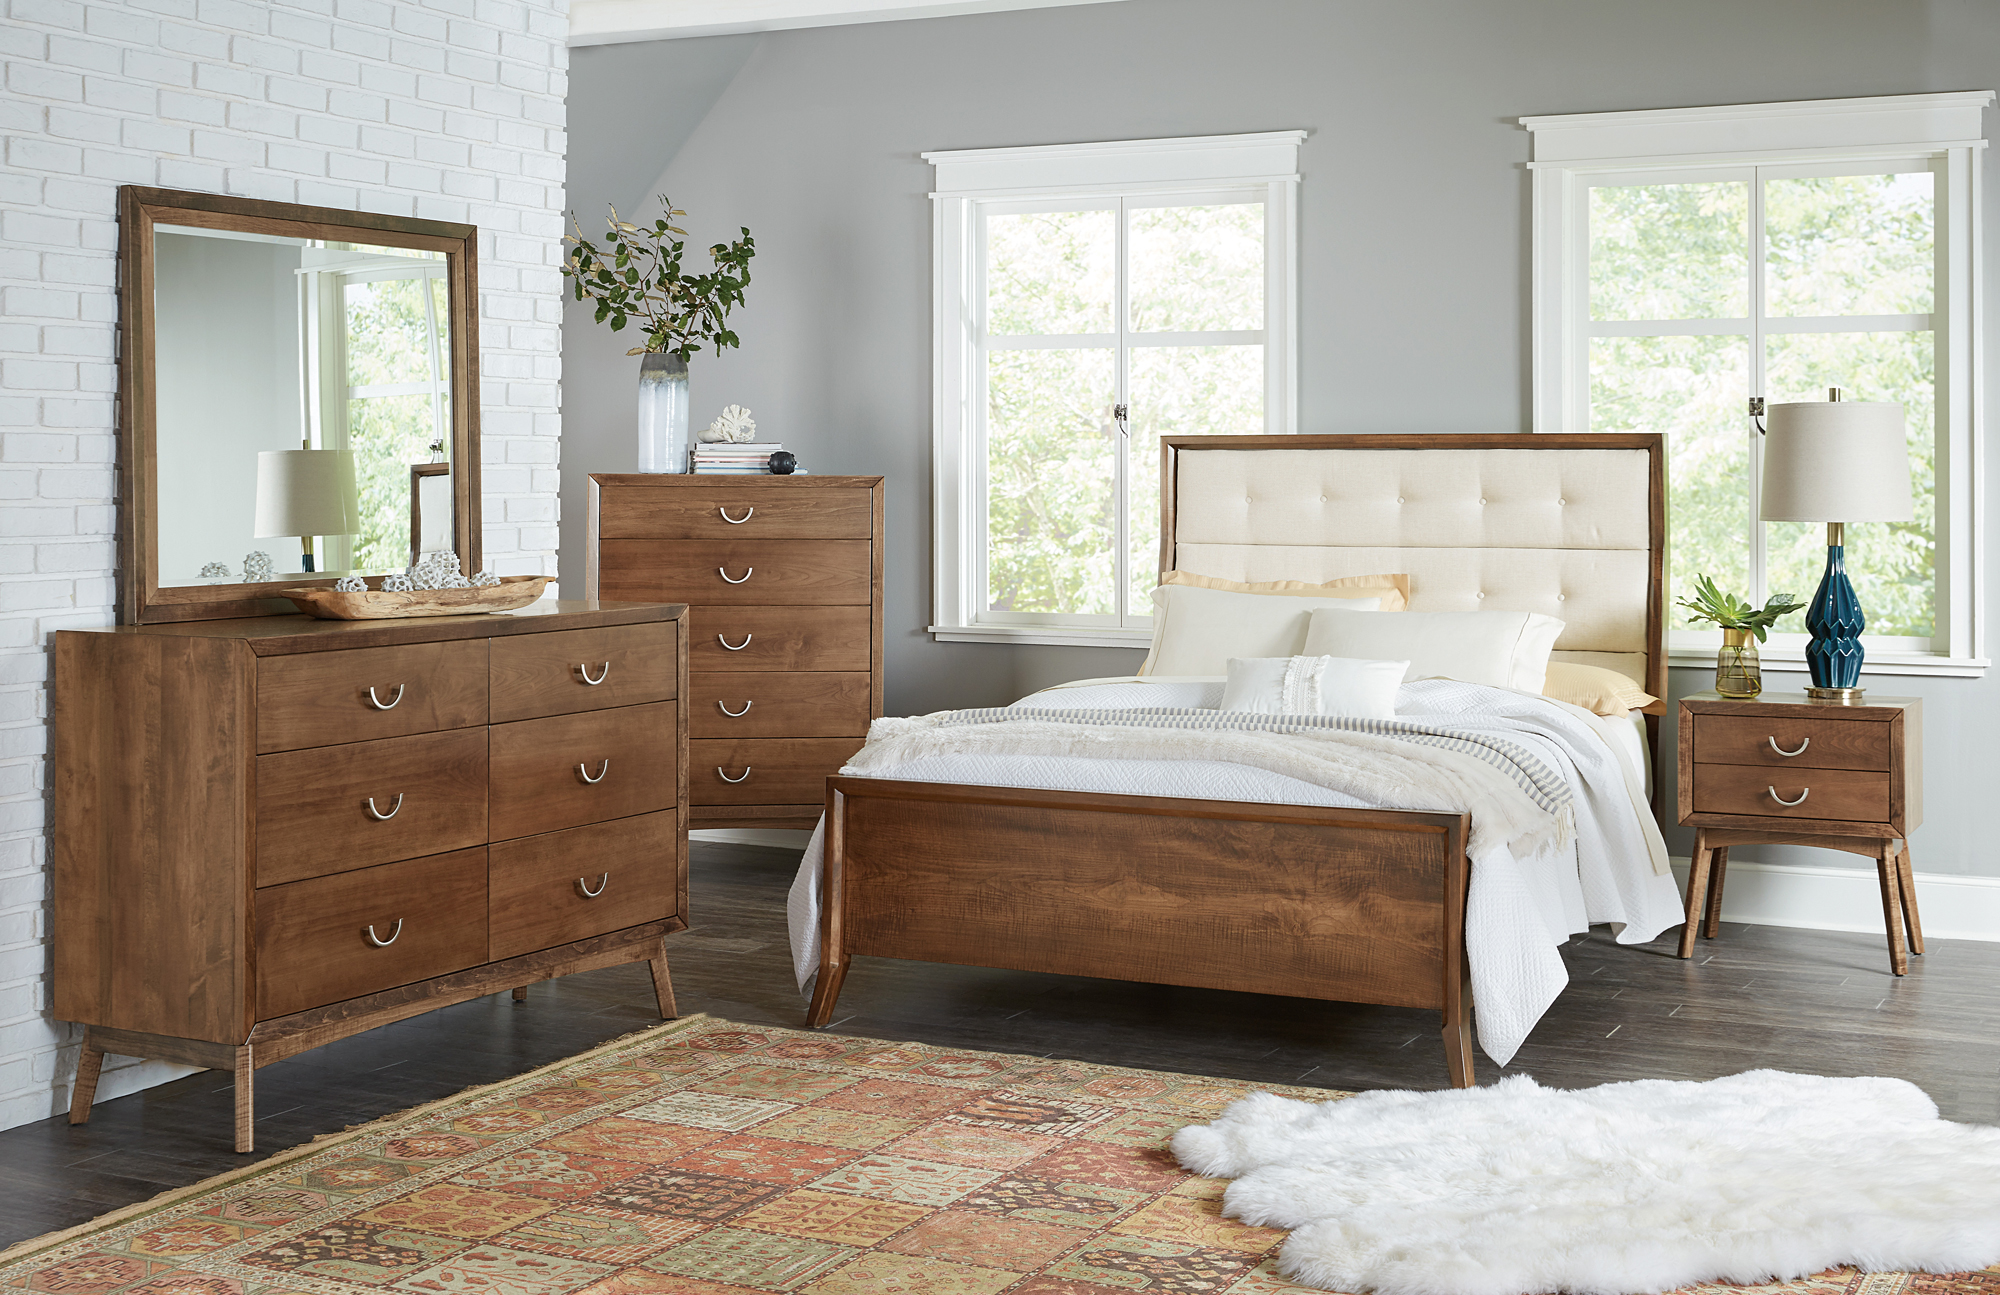 Tucson Bedroom Set Amish Tucson Bedroom Set